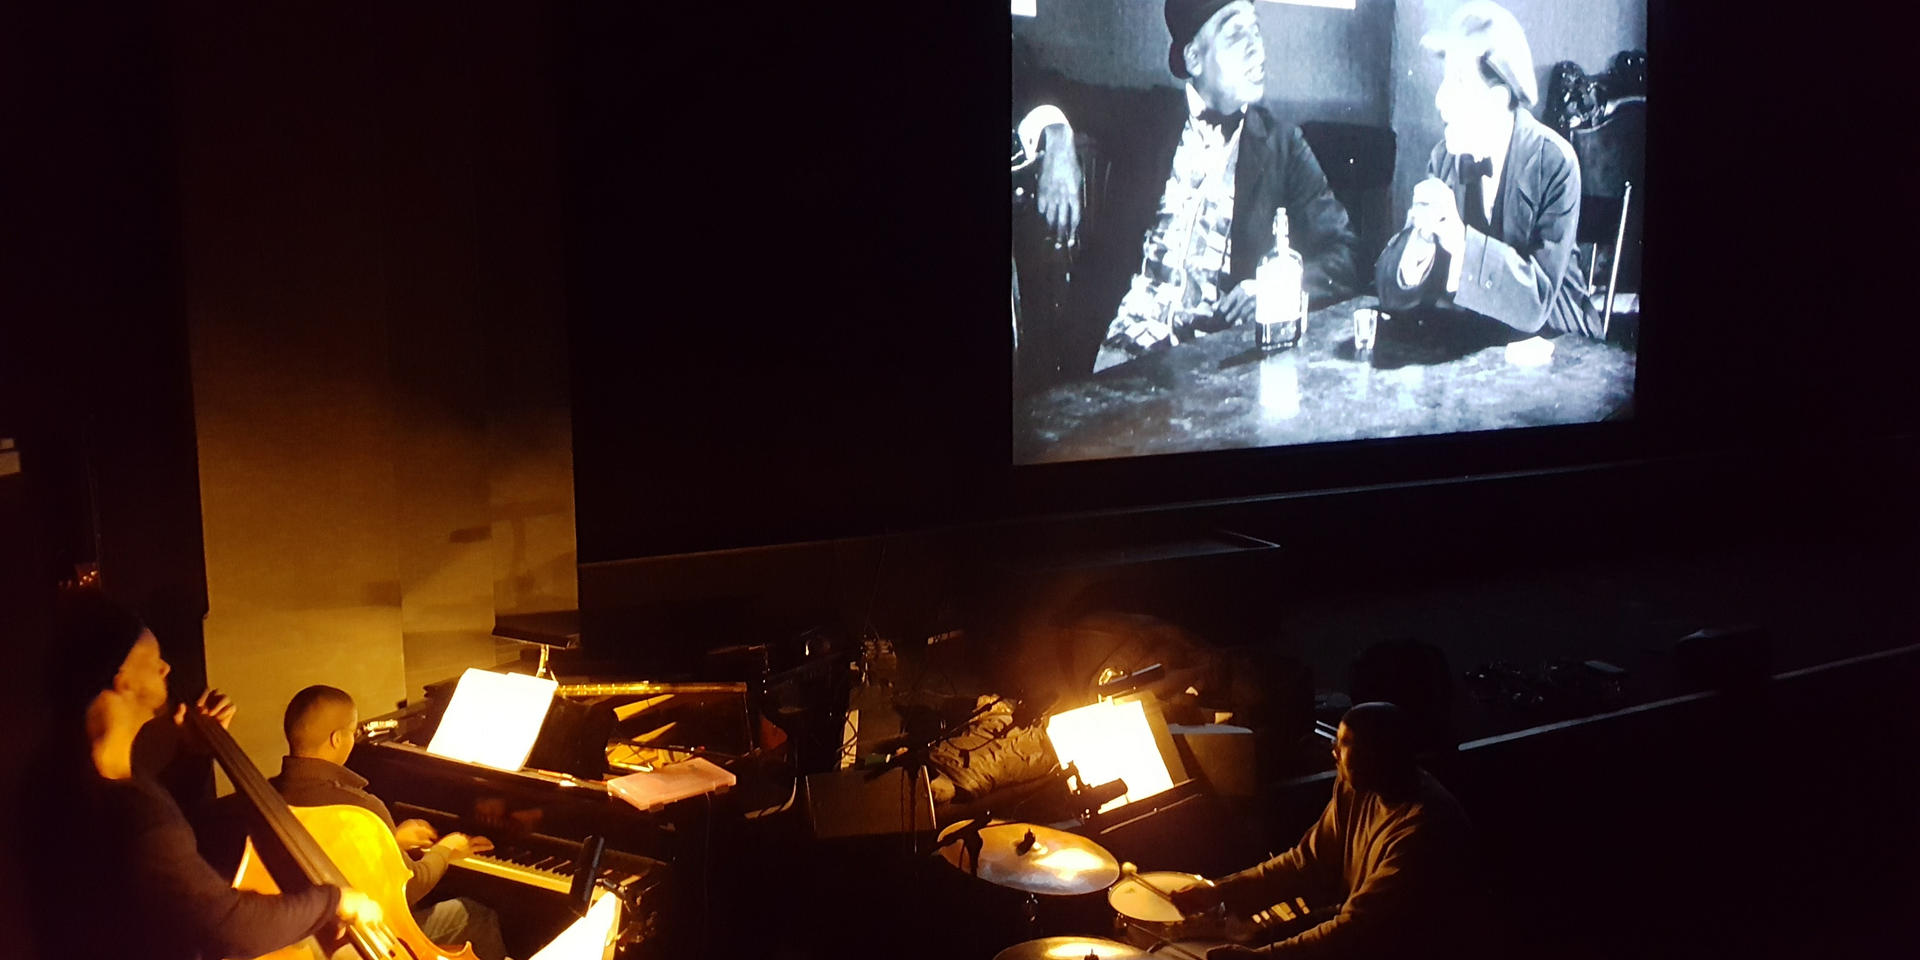 Performing silent film commissionw 'Body and Soul Suite' at the British Film Institute London